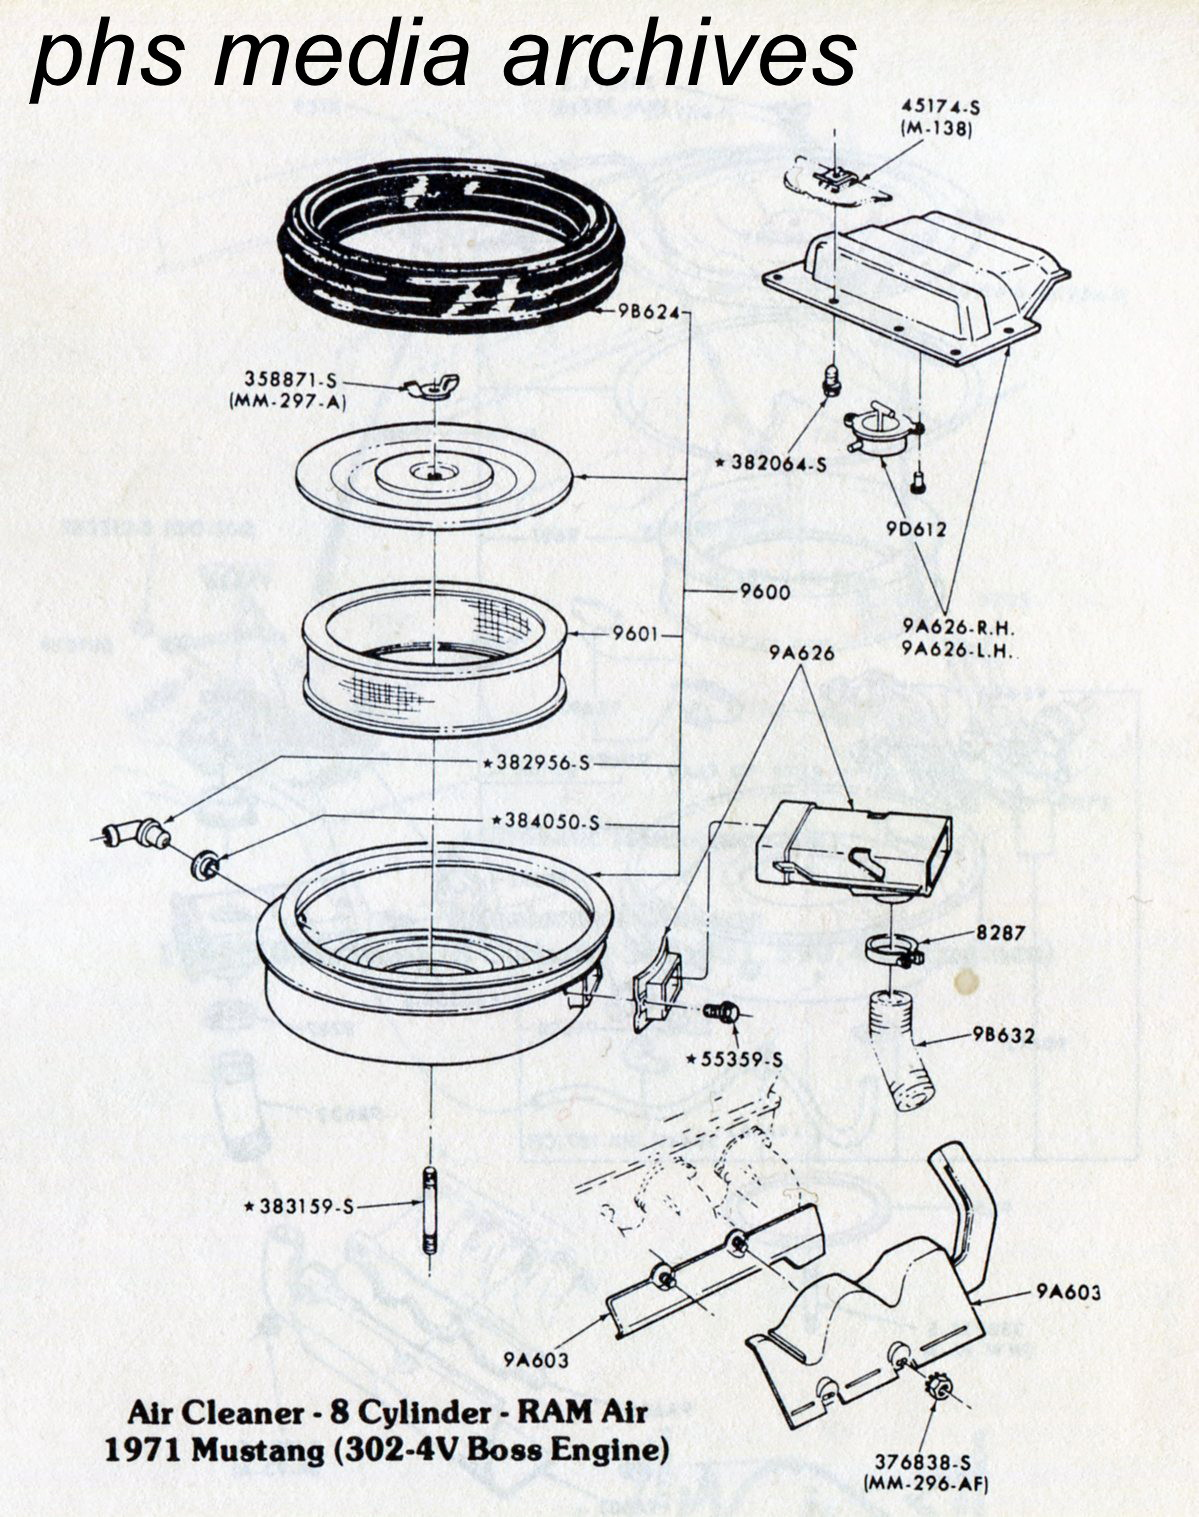 1968 302 4v Engine Pulley Diagram Electrical Wiring Tech Series Ford Mustang Air Cleaner Id Guide 1971 1973 Diesel